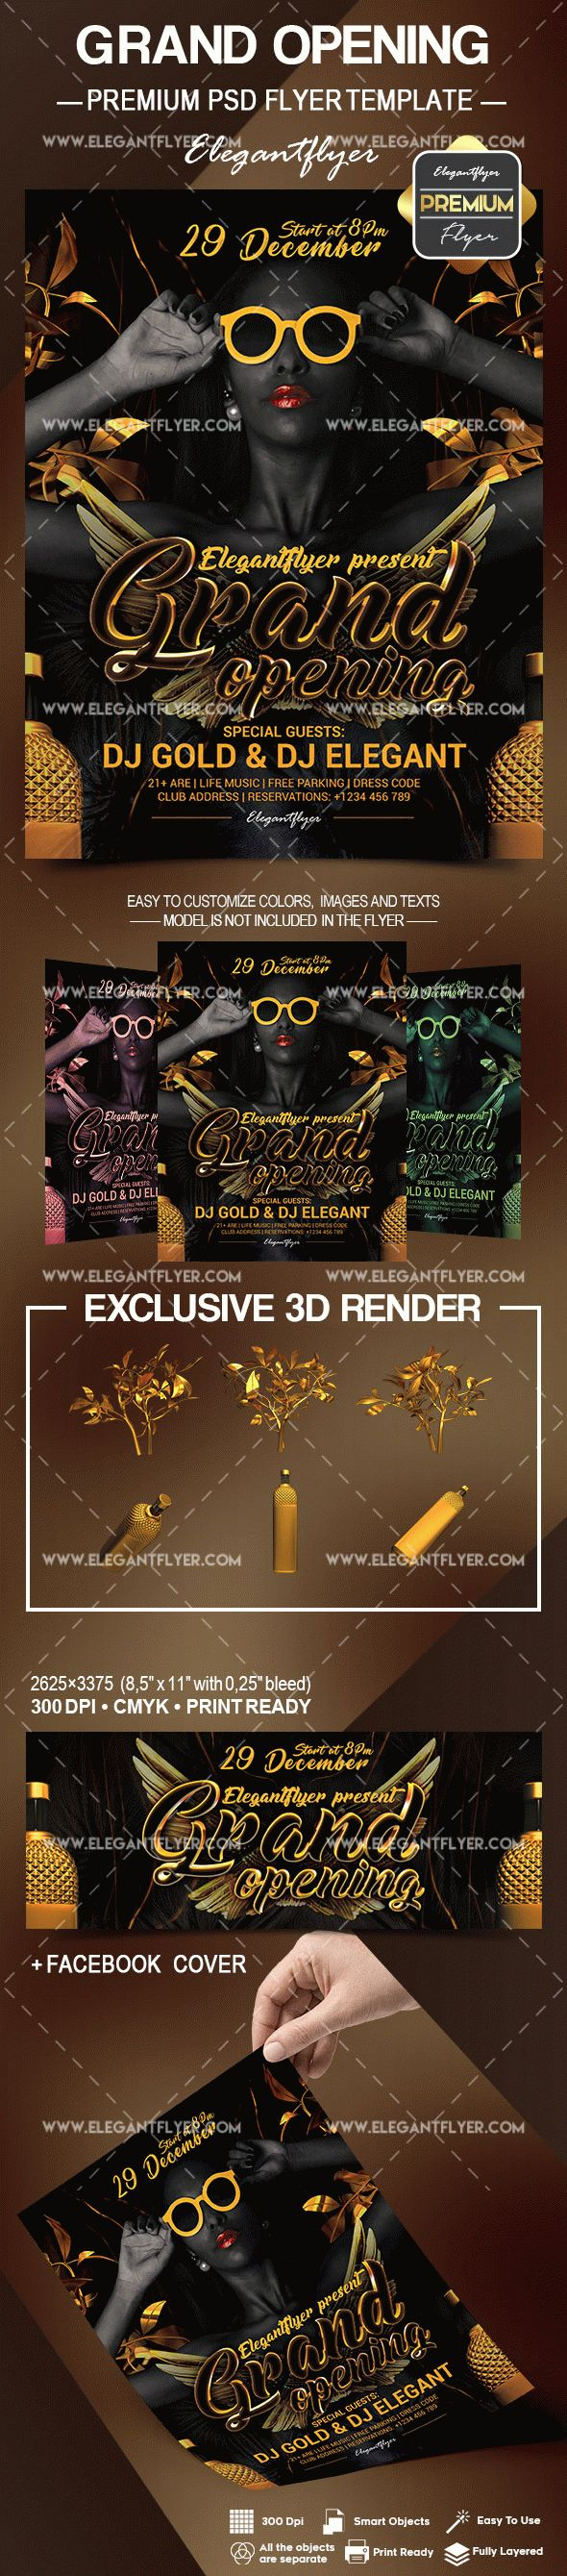 Party for Black and Gold Grand Opening Poster